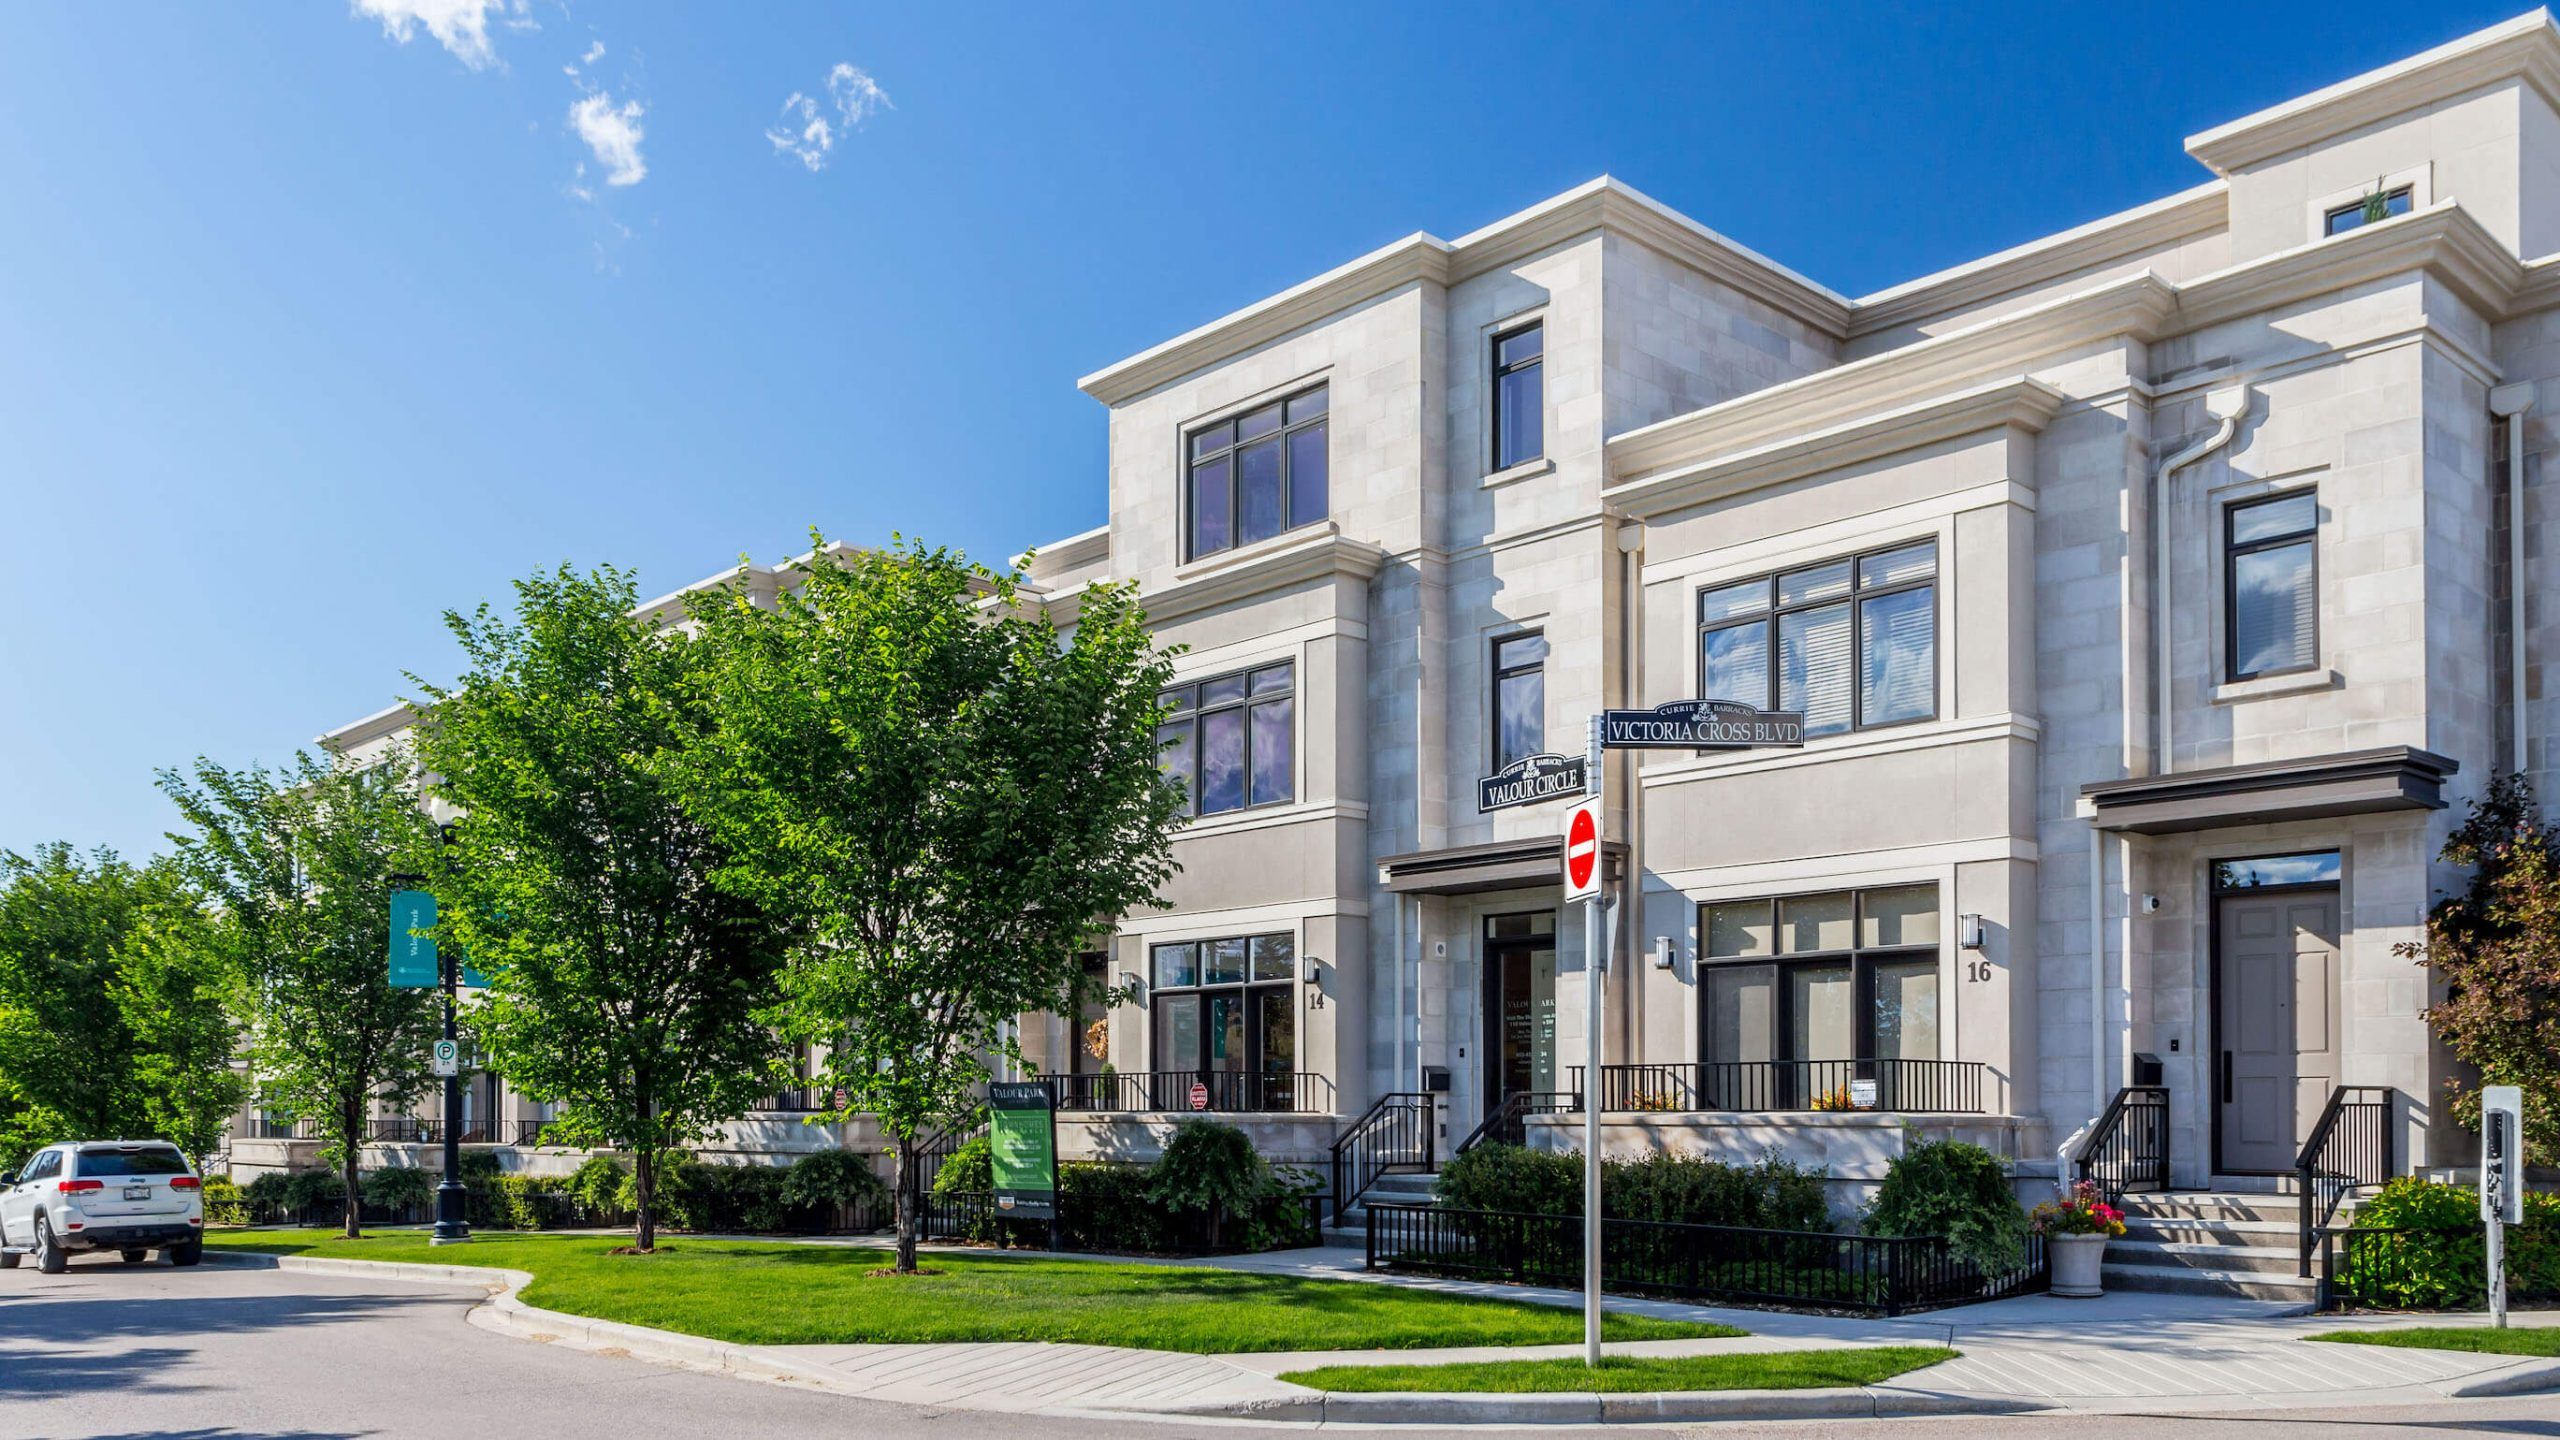 14 Valour Circle Luxury Townhome on Tree-lined street in Calgary Alberta